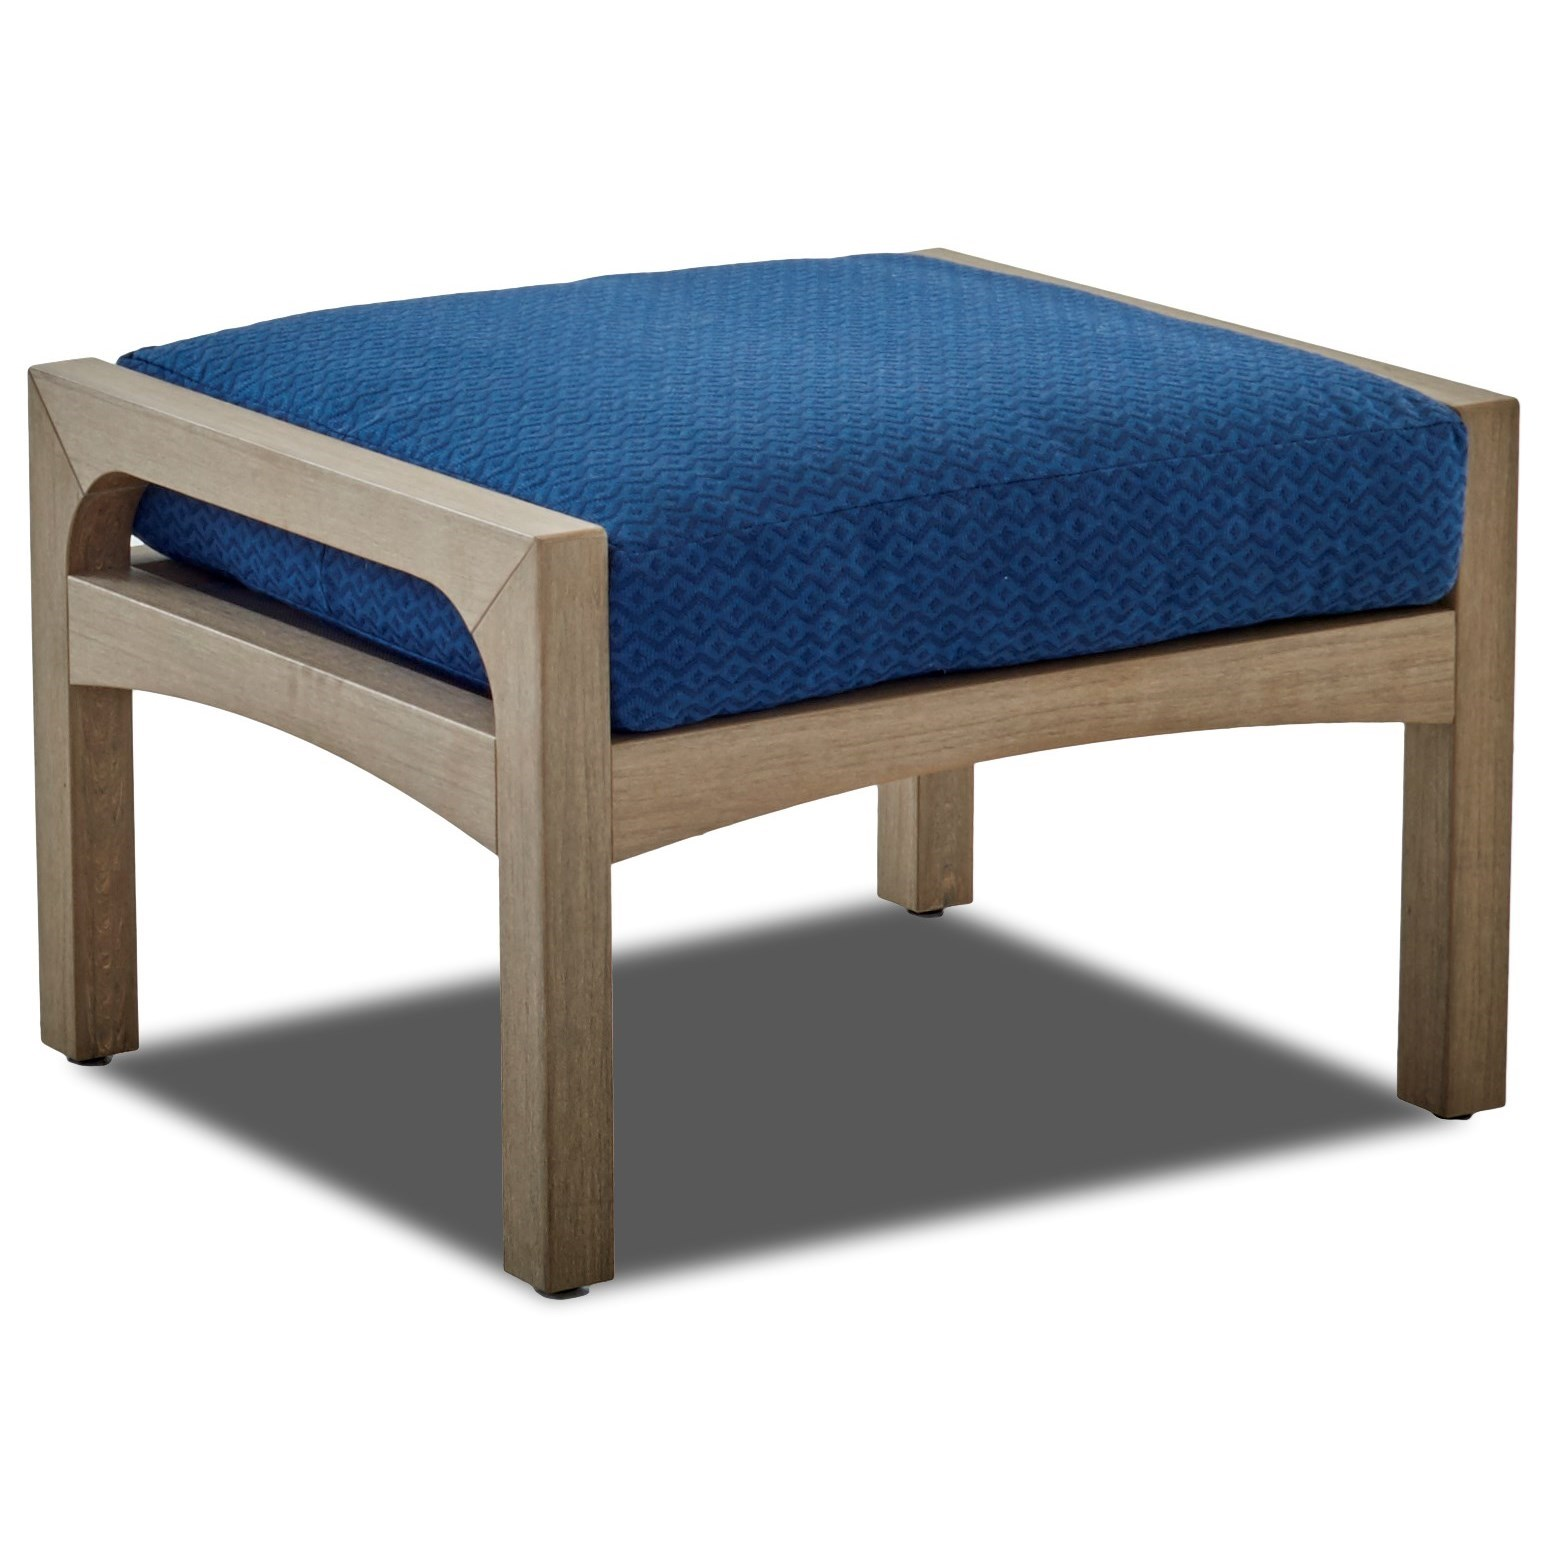 Delray Outdoor Ottoman with Drainable Cushion by Klaussner Outdoor at Nassau Furniture and Mattress